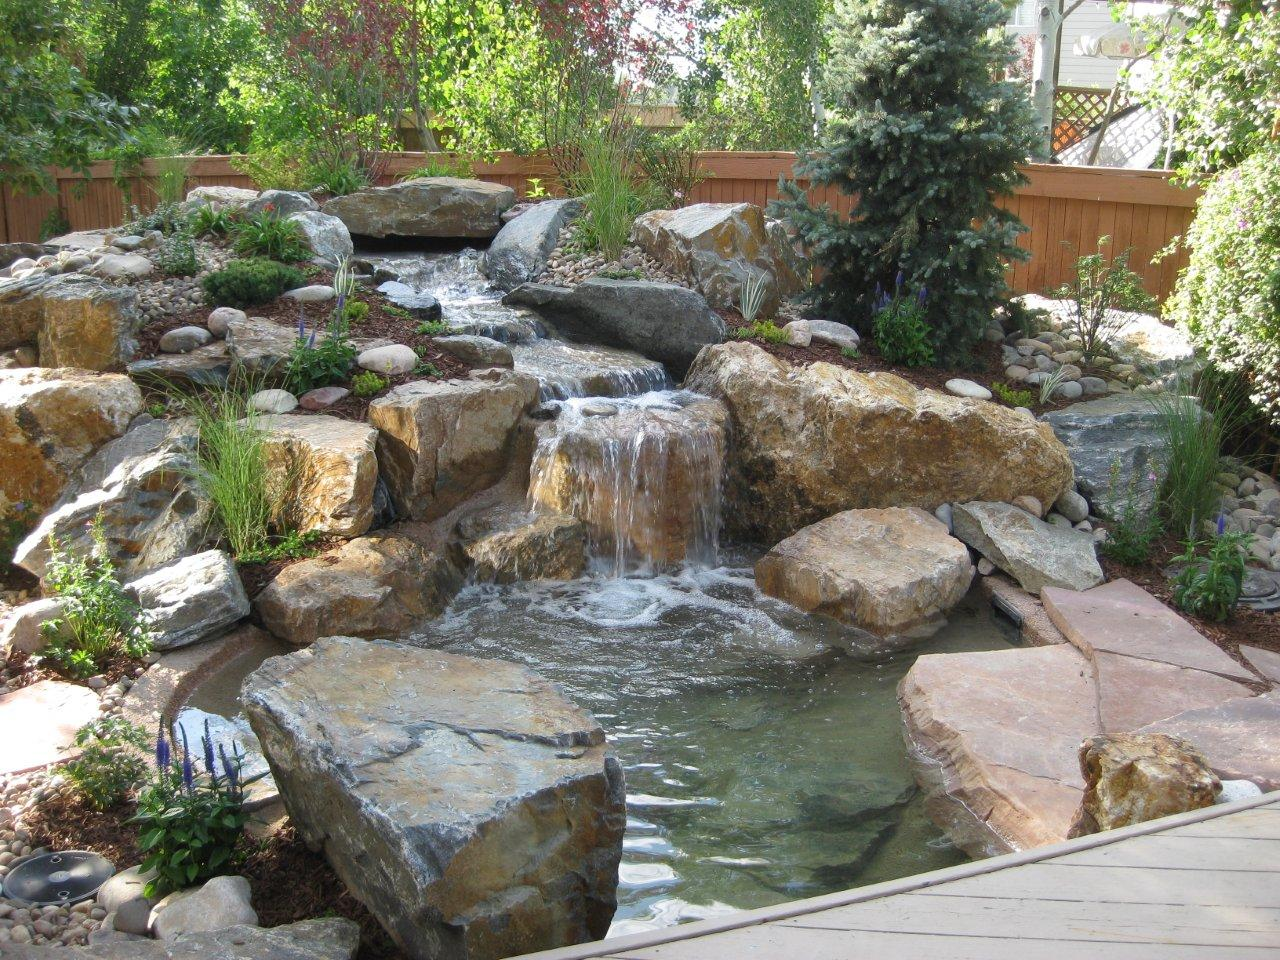 Why use landscaping stones for 1000 designs for the garden and where to find them